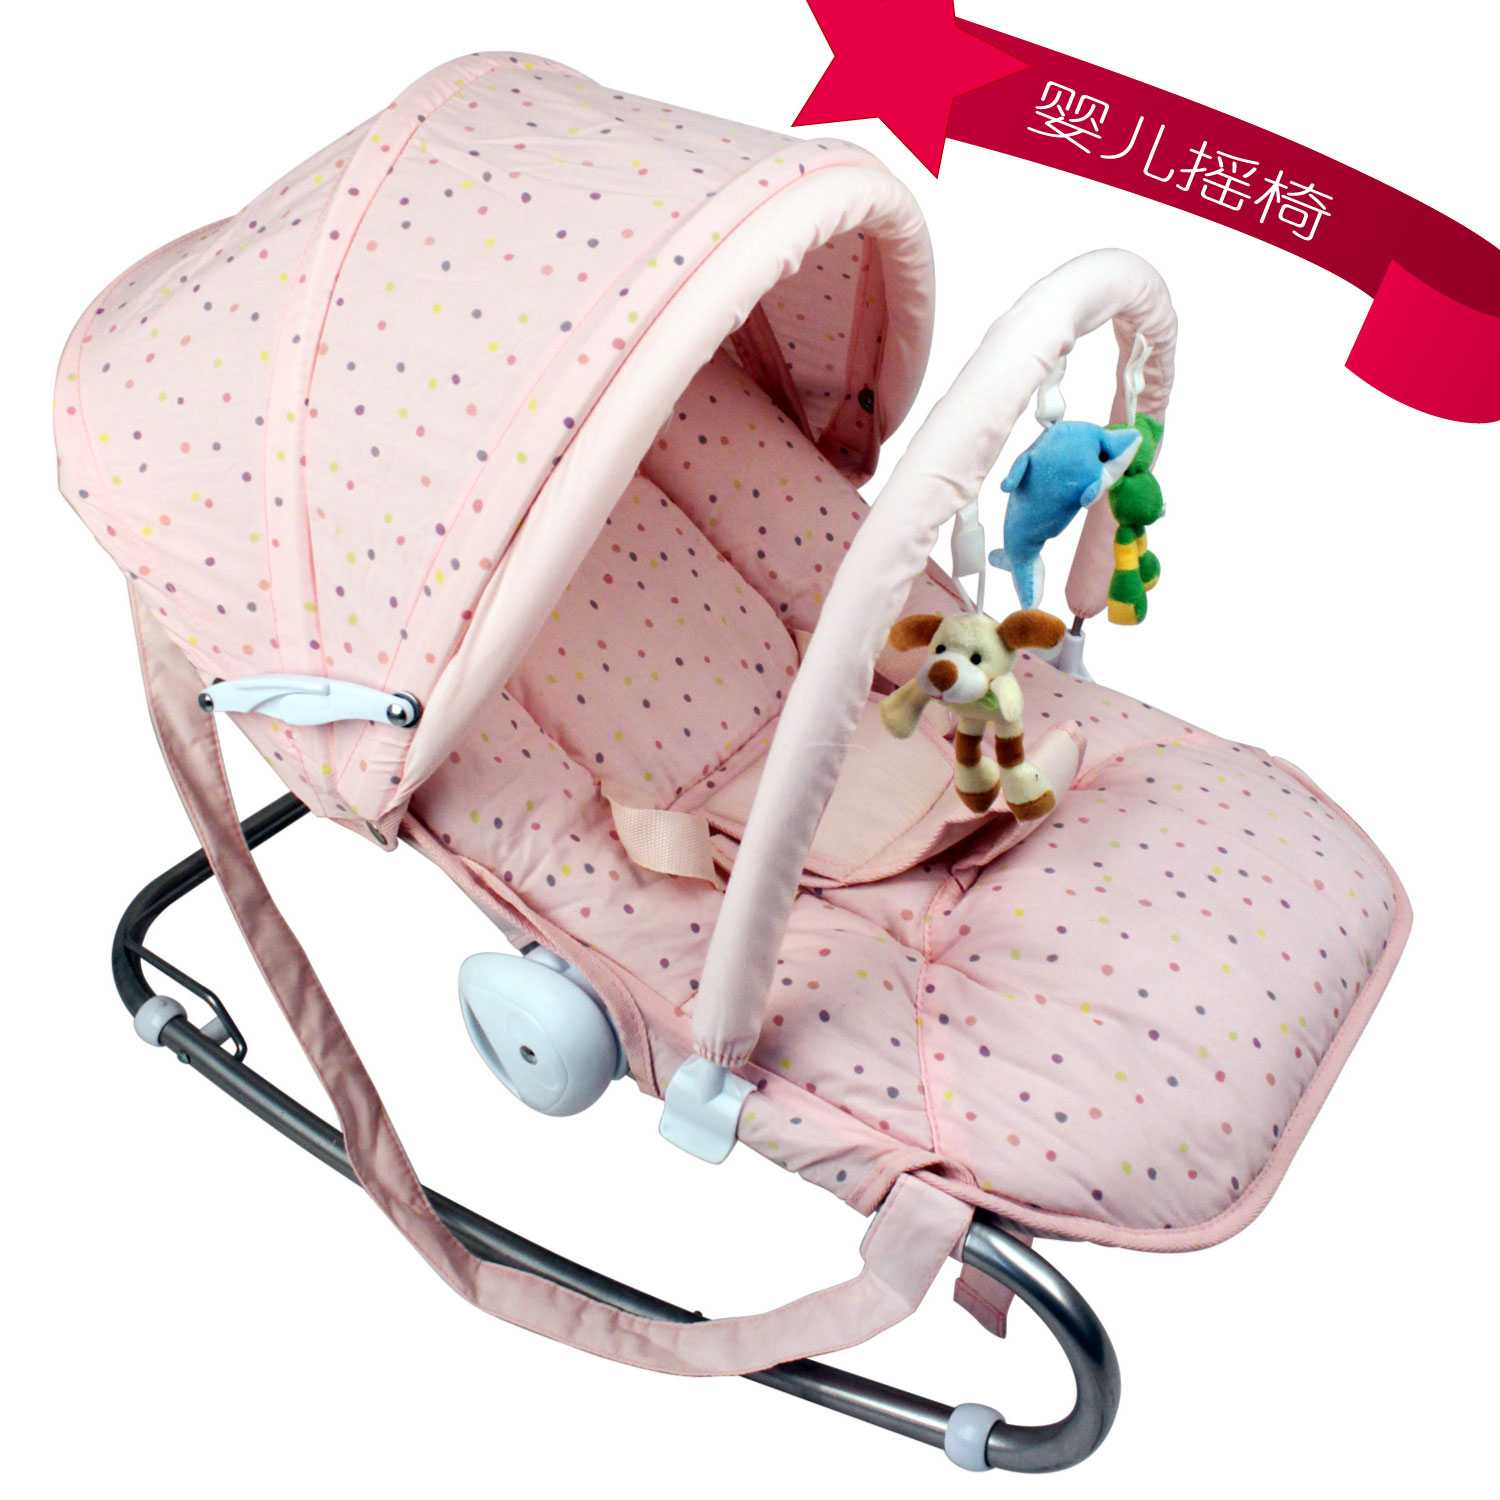 Aliexpress Buy Multifunctional baby rocking chair cradle baby chair reassure the rocking